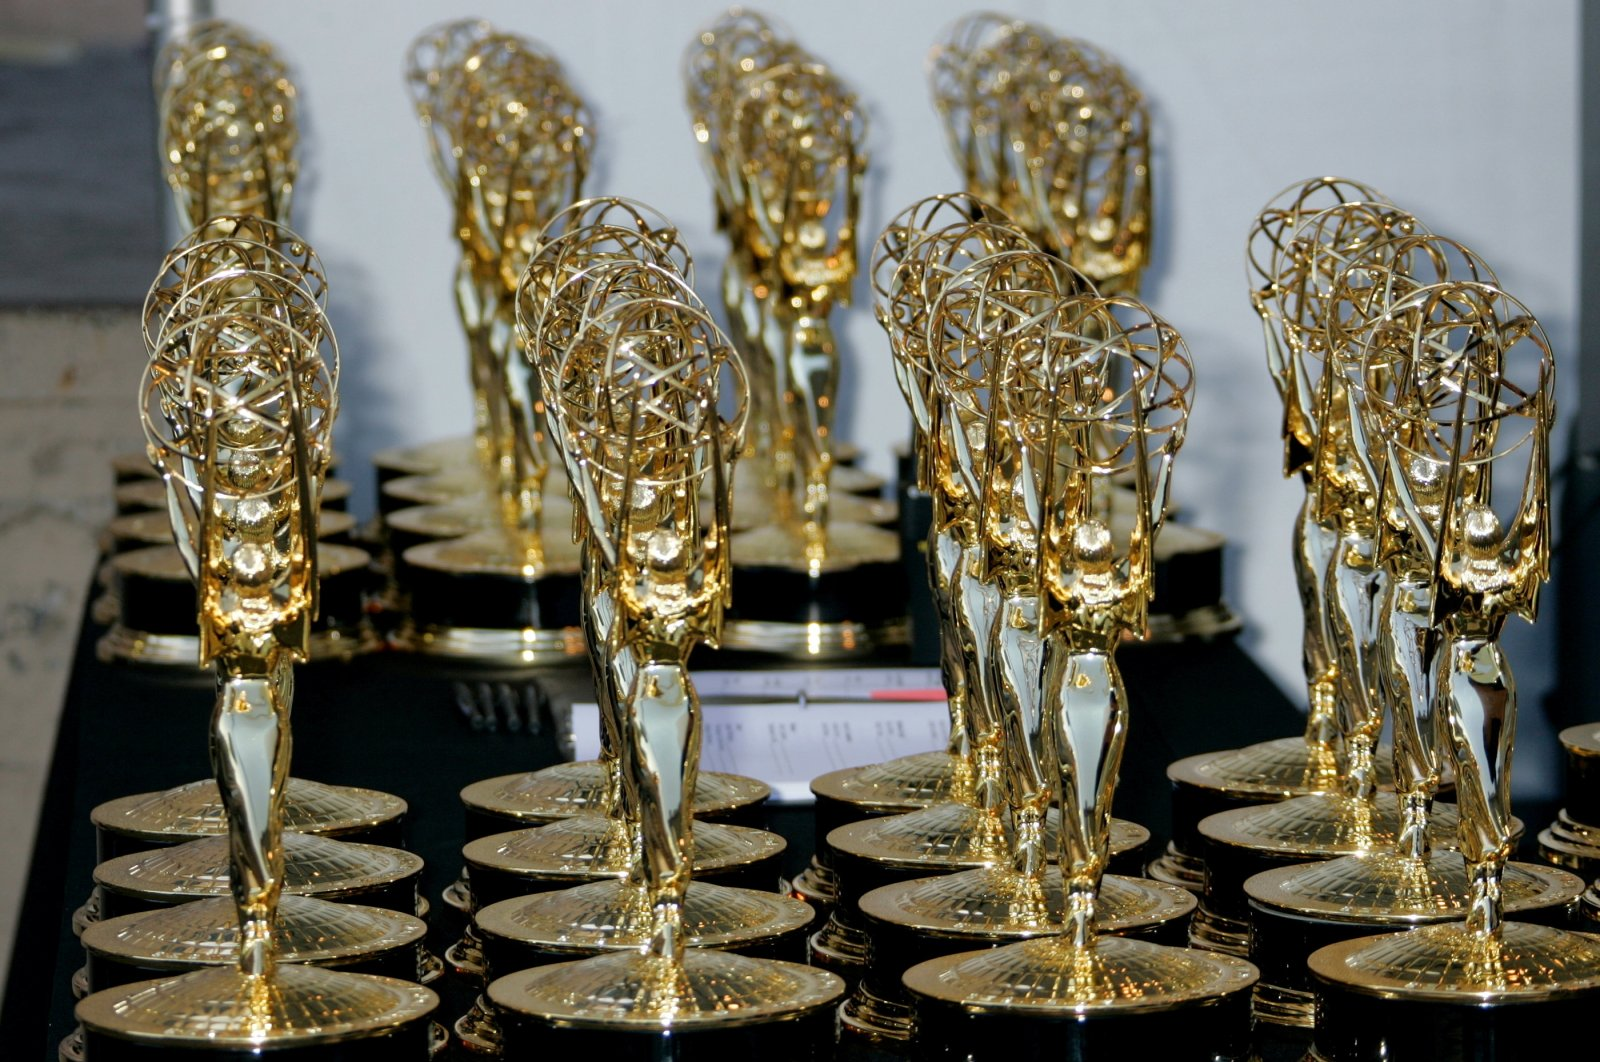 Rows of Emmy Award statuettes are seen at the 2006 Creative Arts Emmys in Los Angeles on August 19, 2006. (REUTERS Photo)